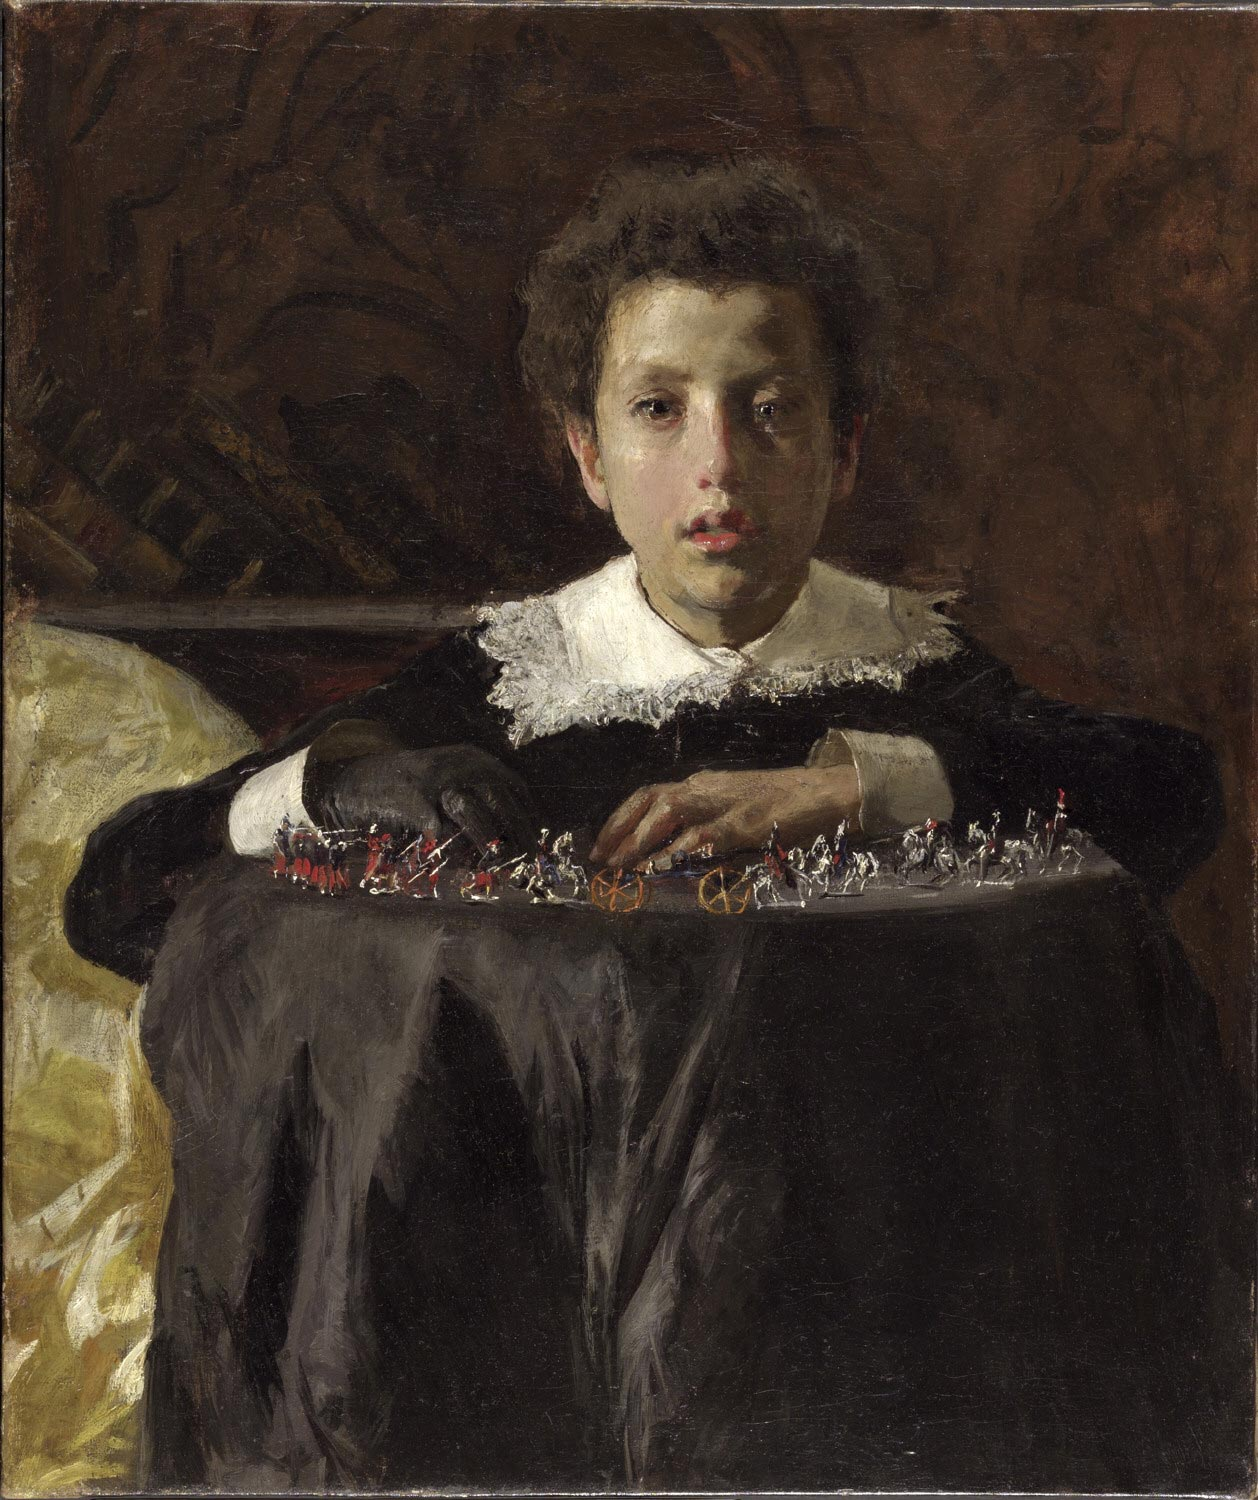 Boy with Toy Soldiers